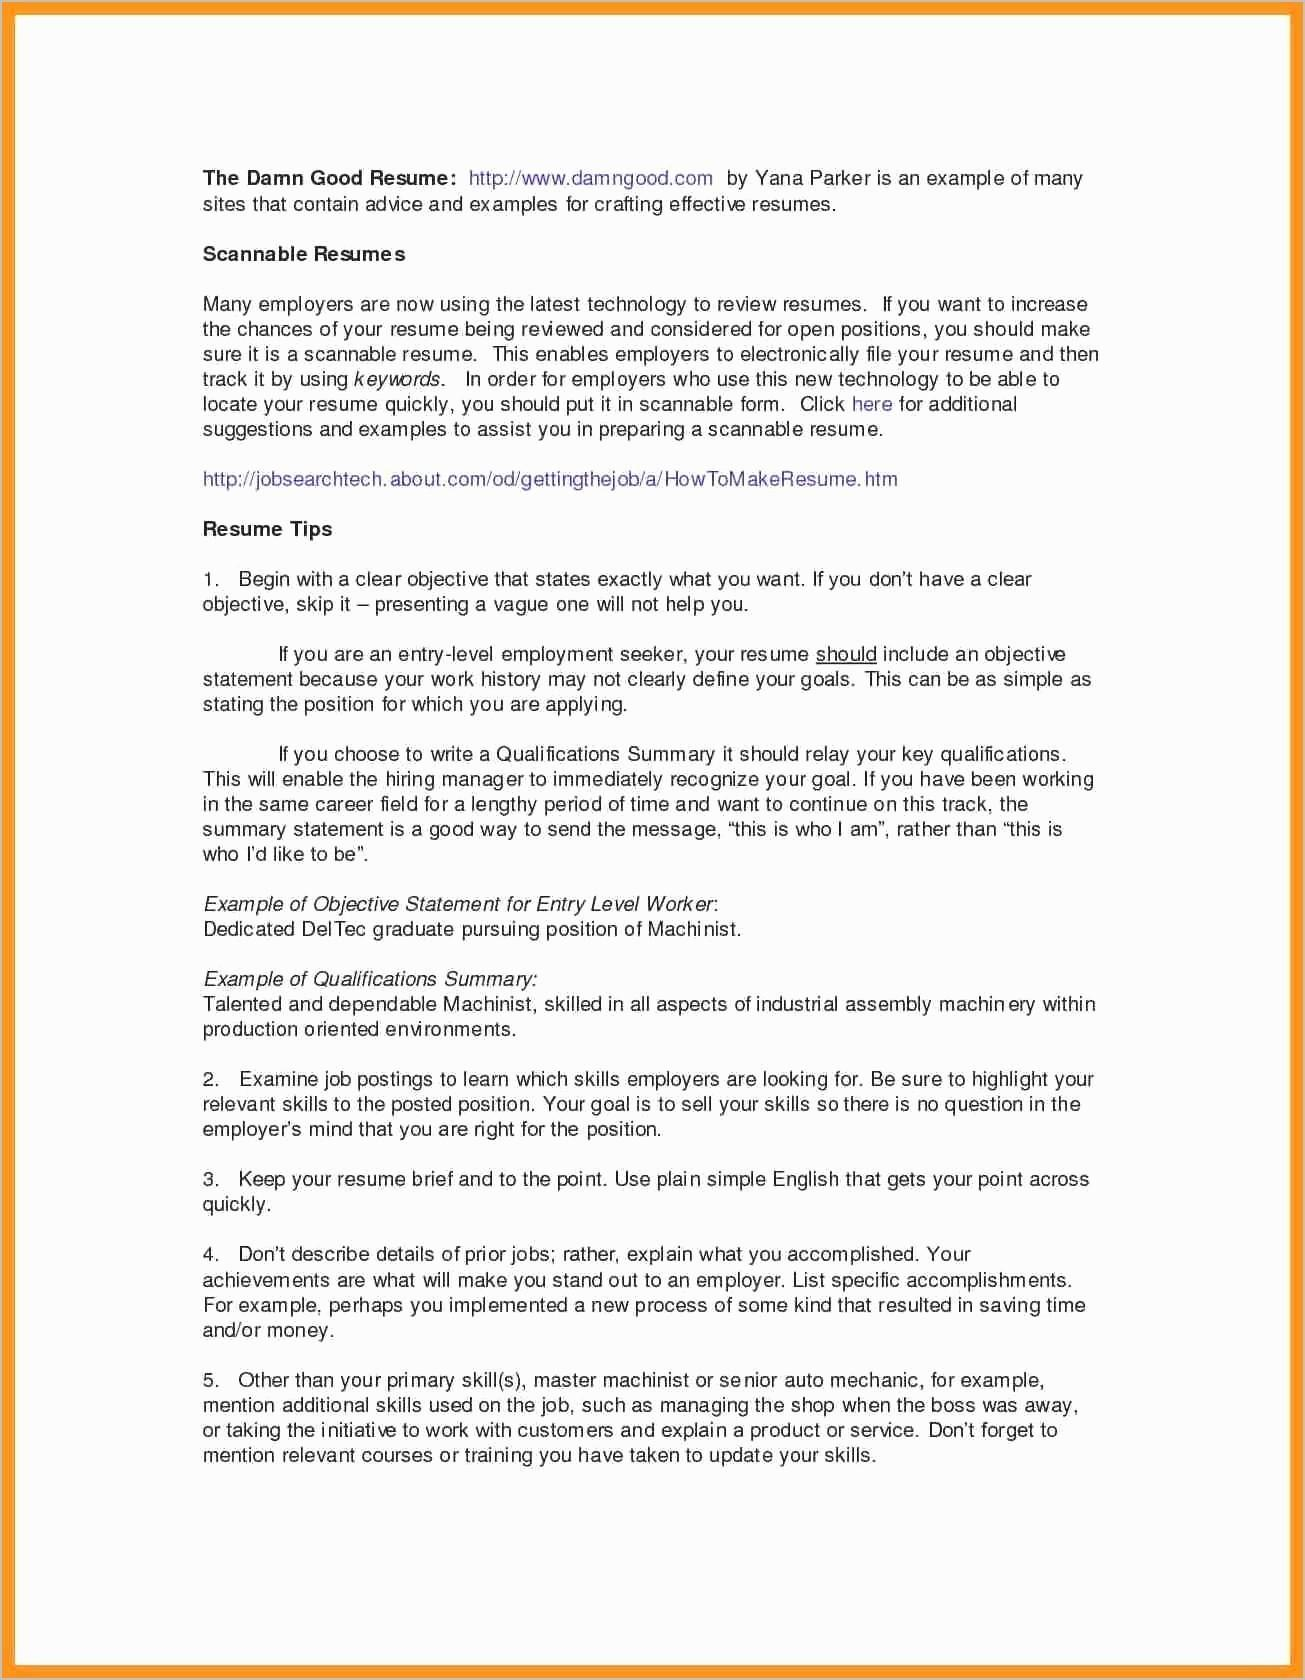 Machinist Resumes - Objective Statement Resume Examples Best Resume Profile Summary